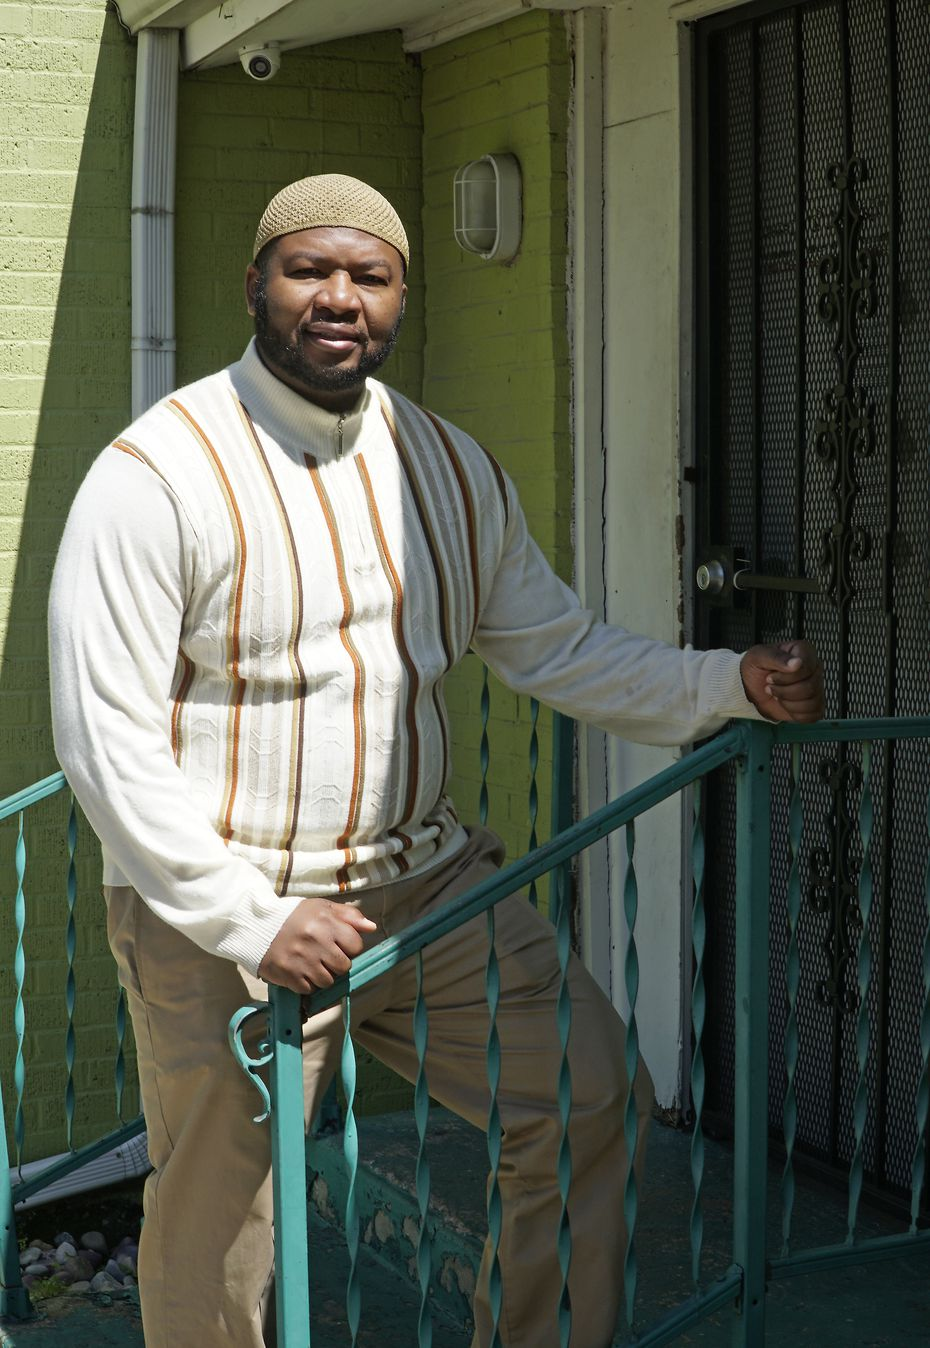 Imam-elect Muhammad Abdul-Jami, a Dallas school district educator, says he's humbled to be taking over the mosque.